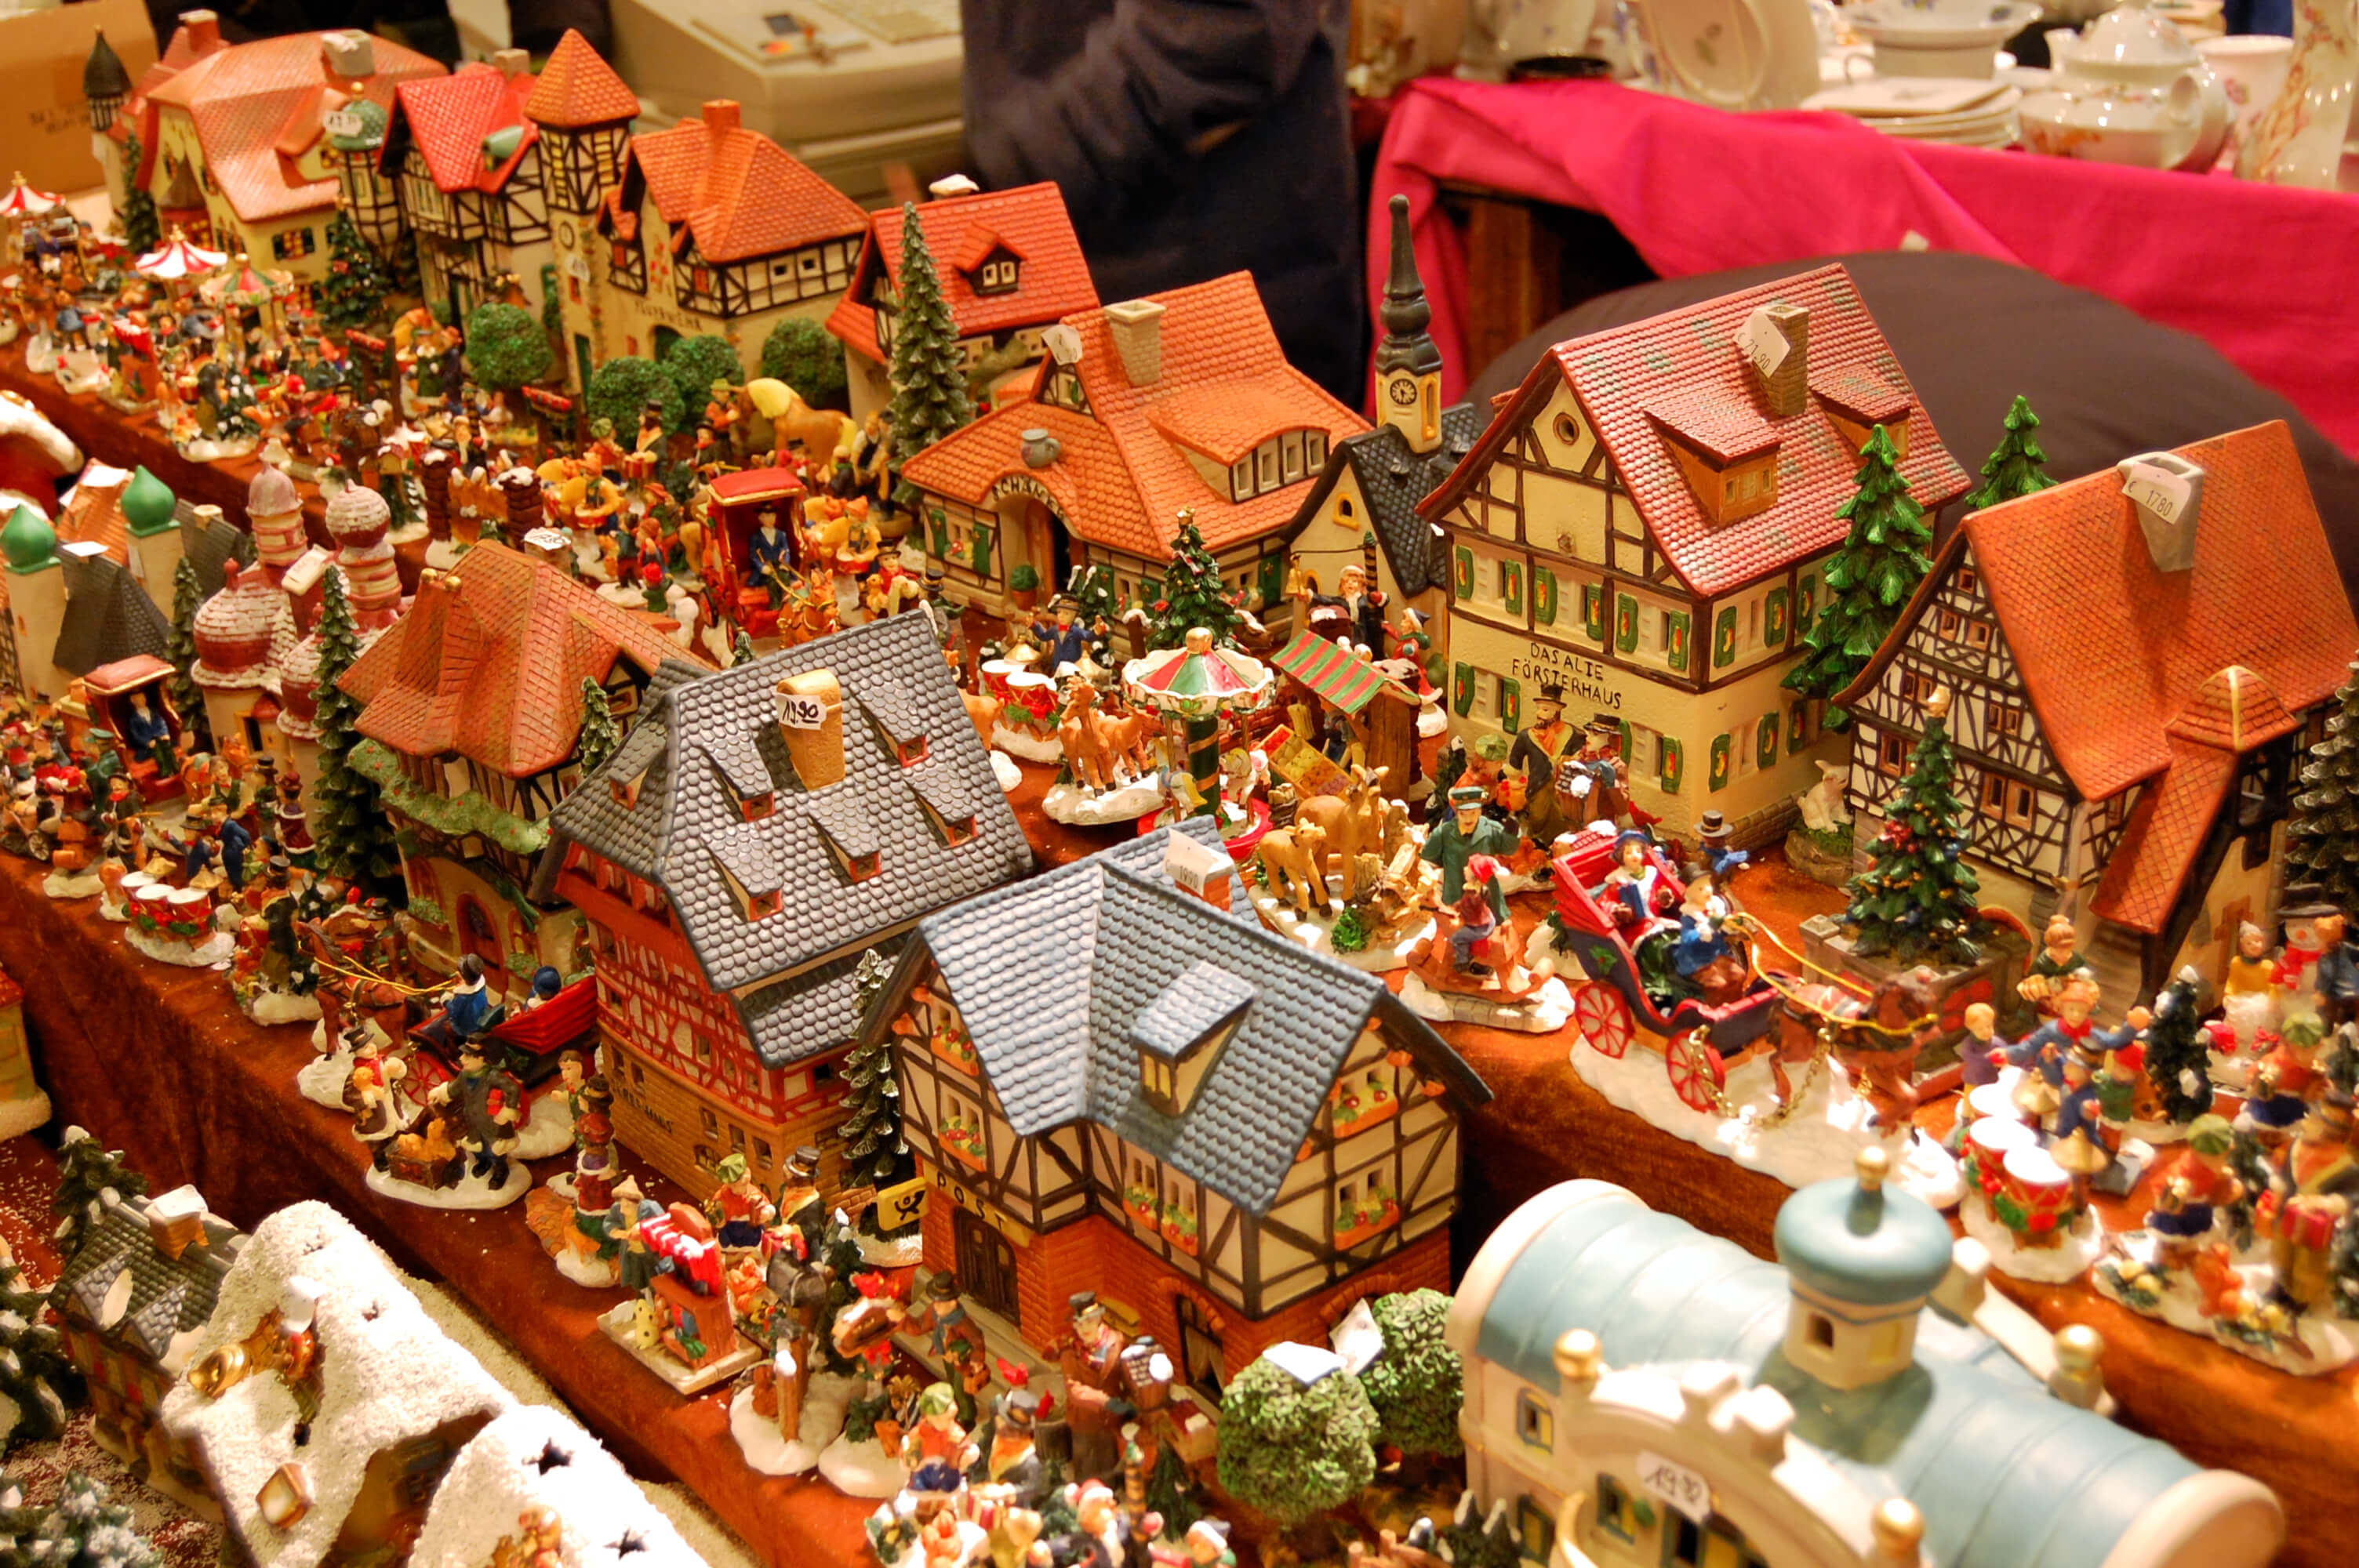 The best Christmas markets in Berlin - souvenirs on display